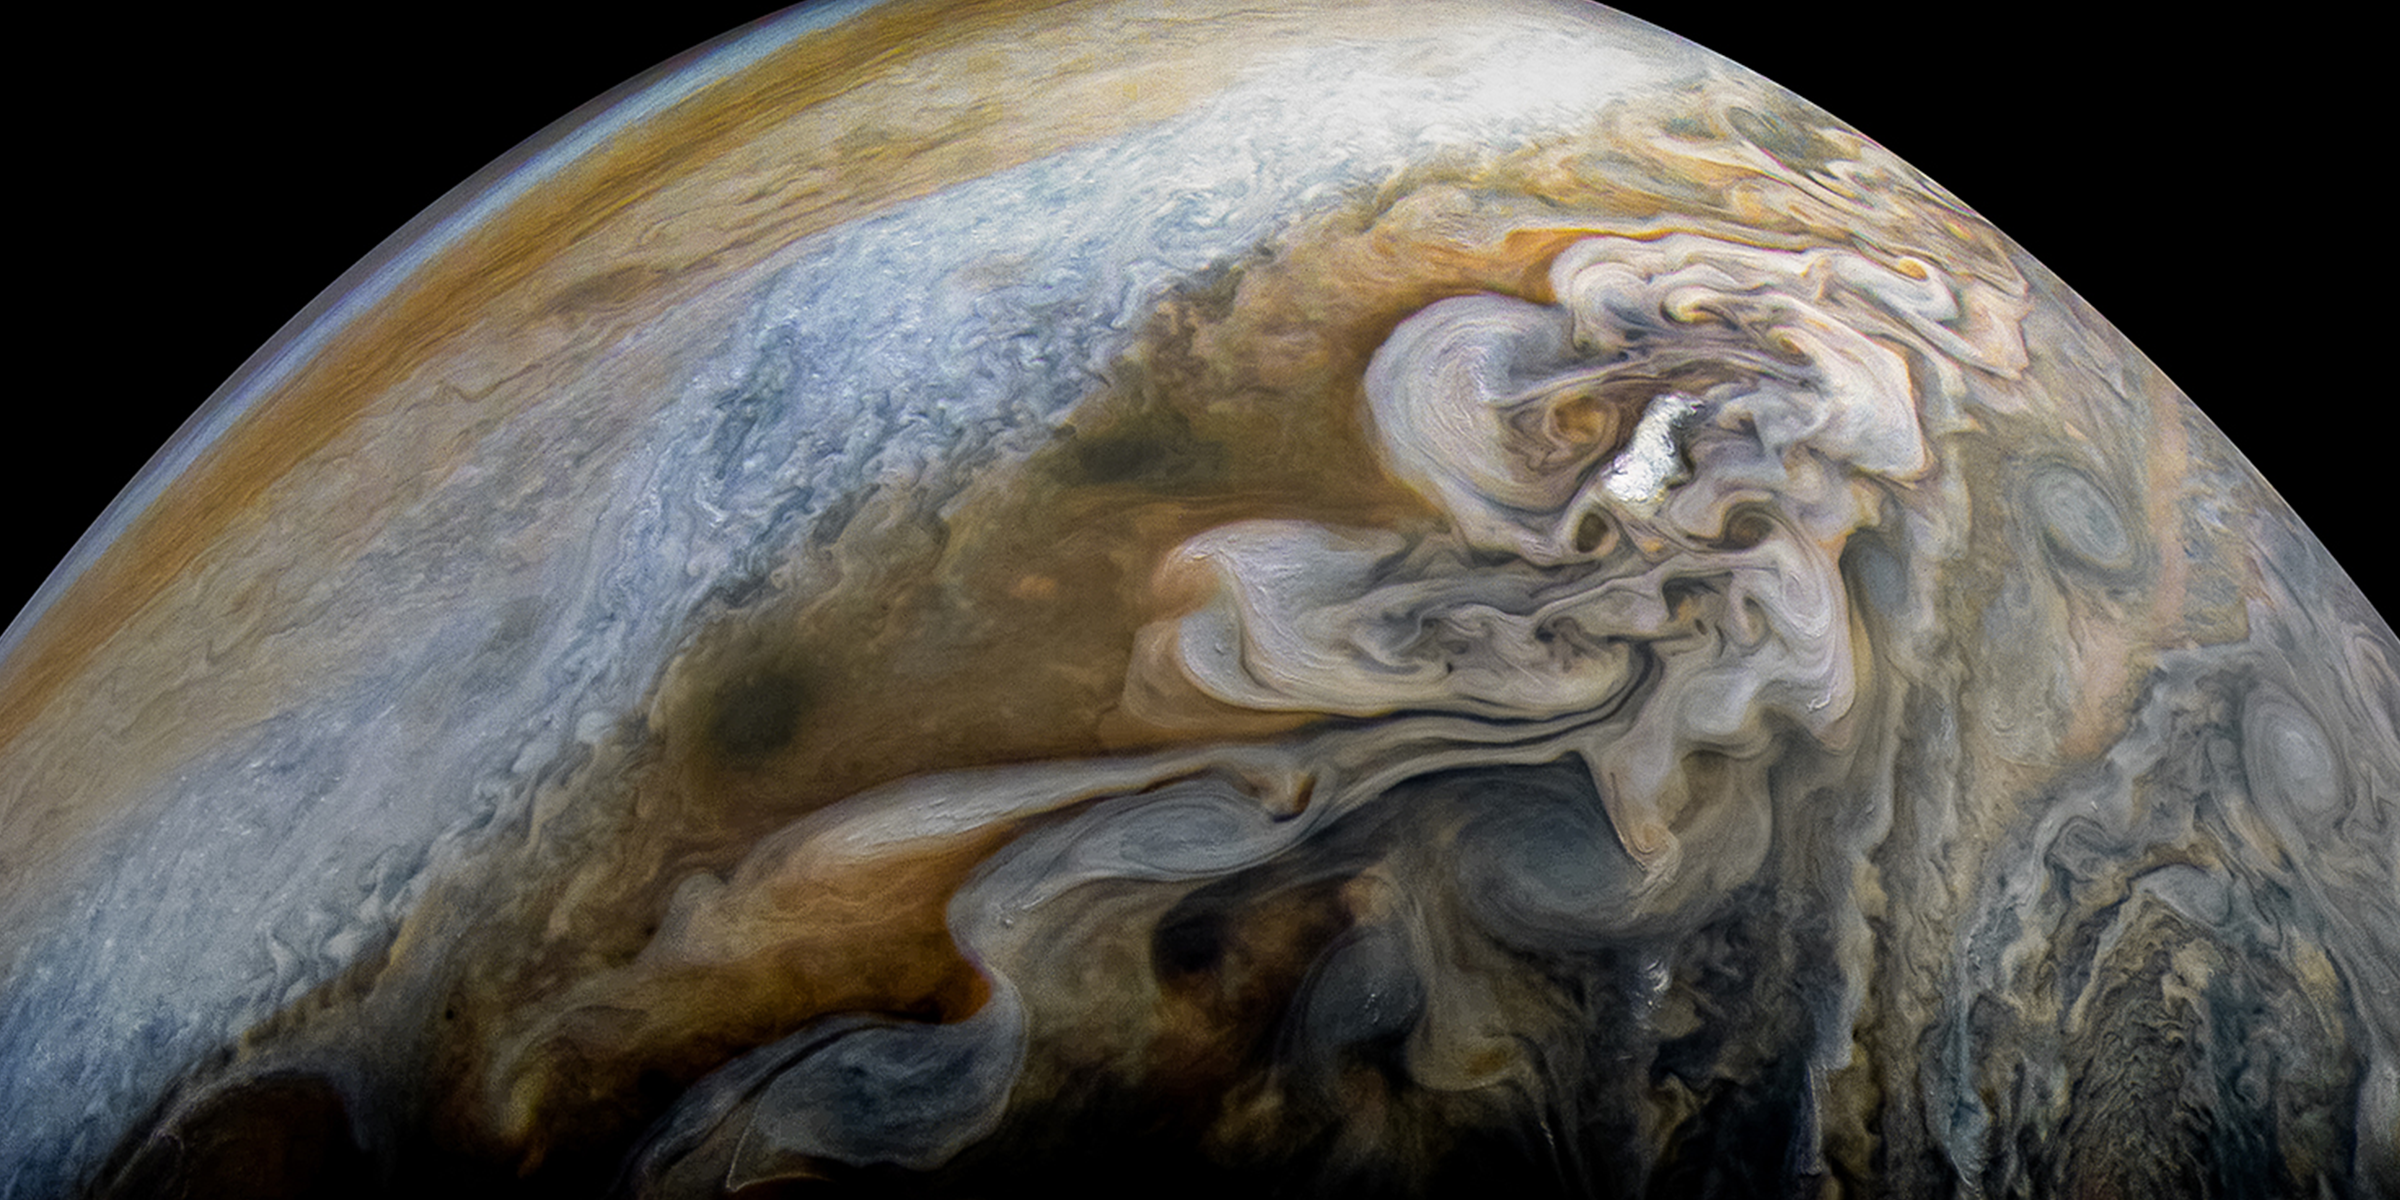 Jupiter's Swirling Cloud Formations. Credit: NASA, JPL-Caltech, SwRI, MSSS, Kevin M. Gill.